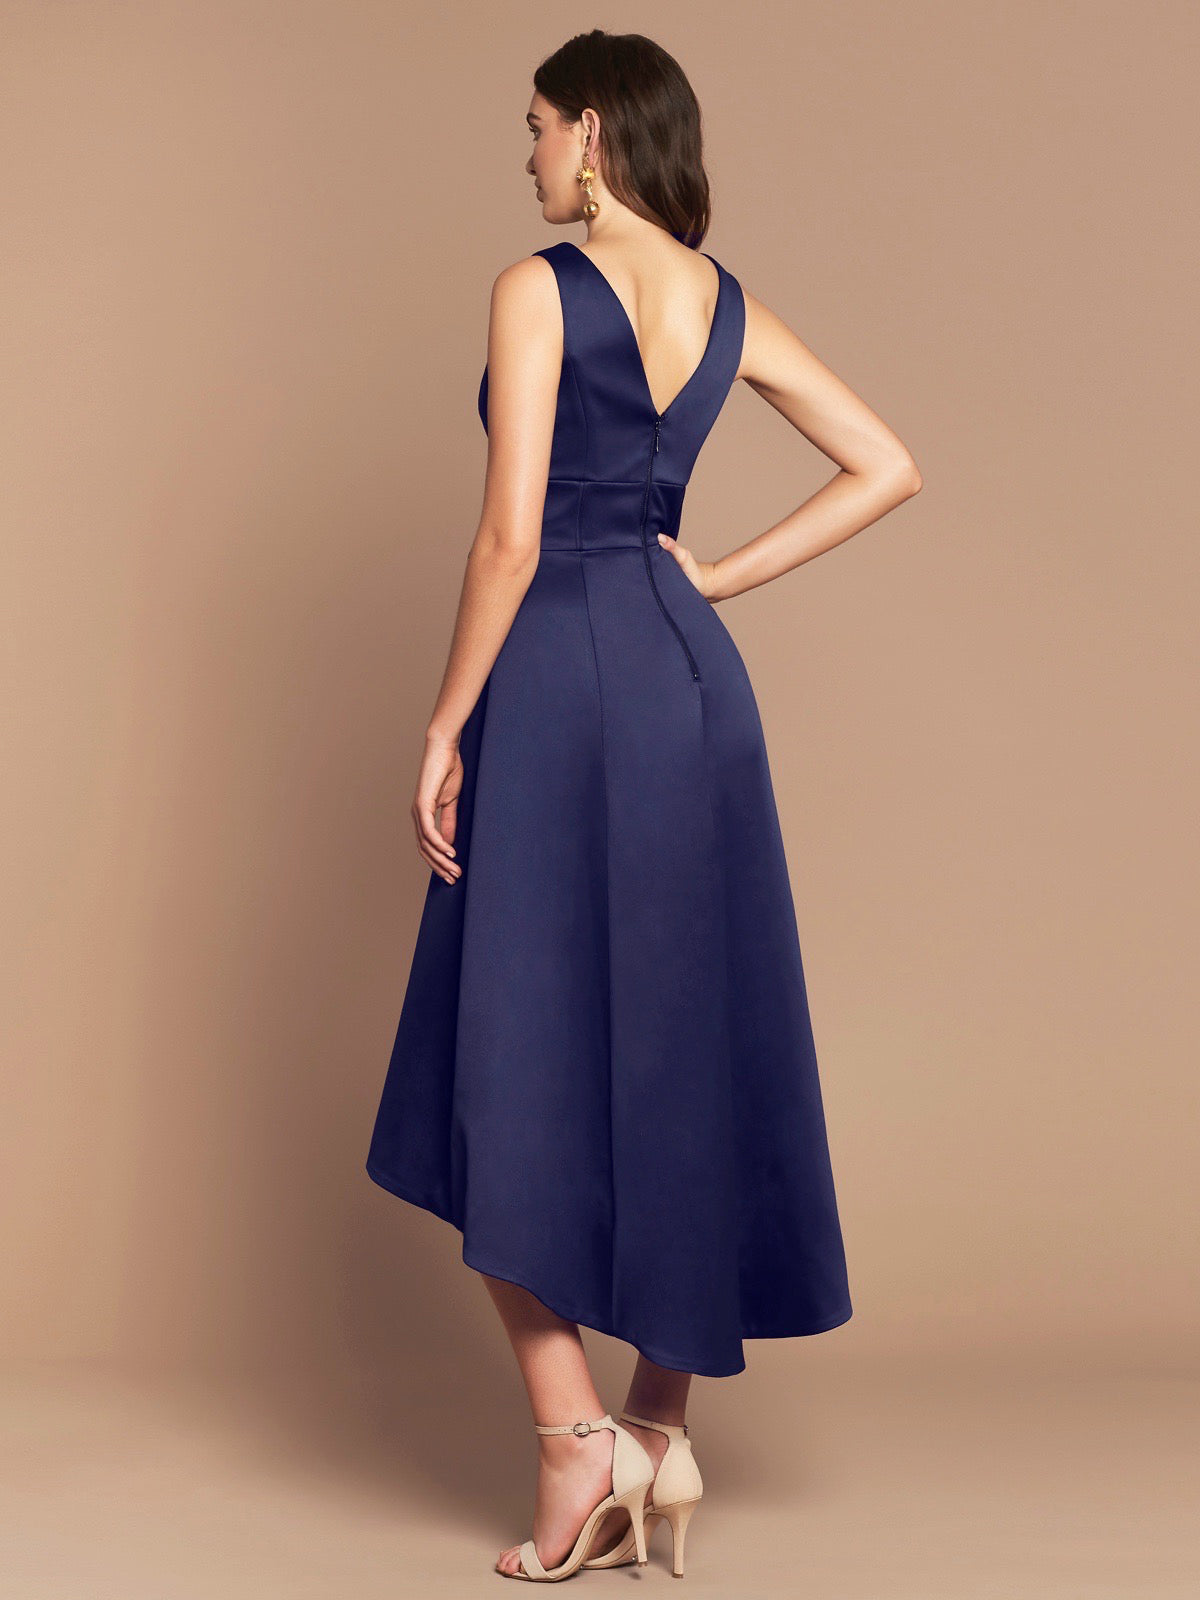 EDEN DRESS - NAVY